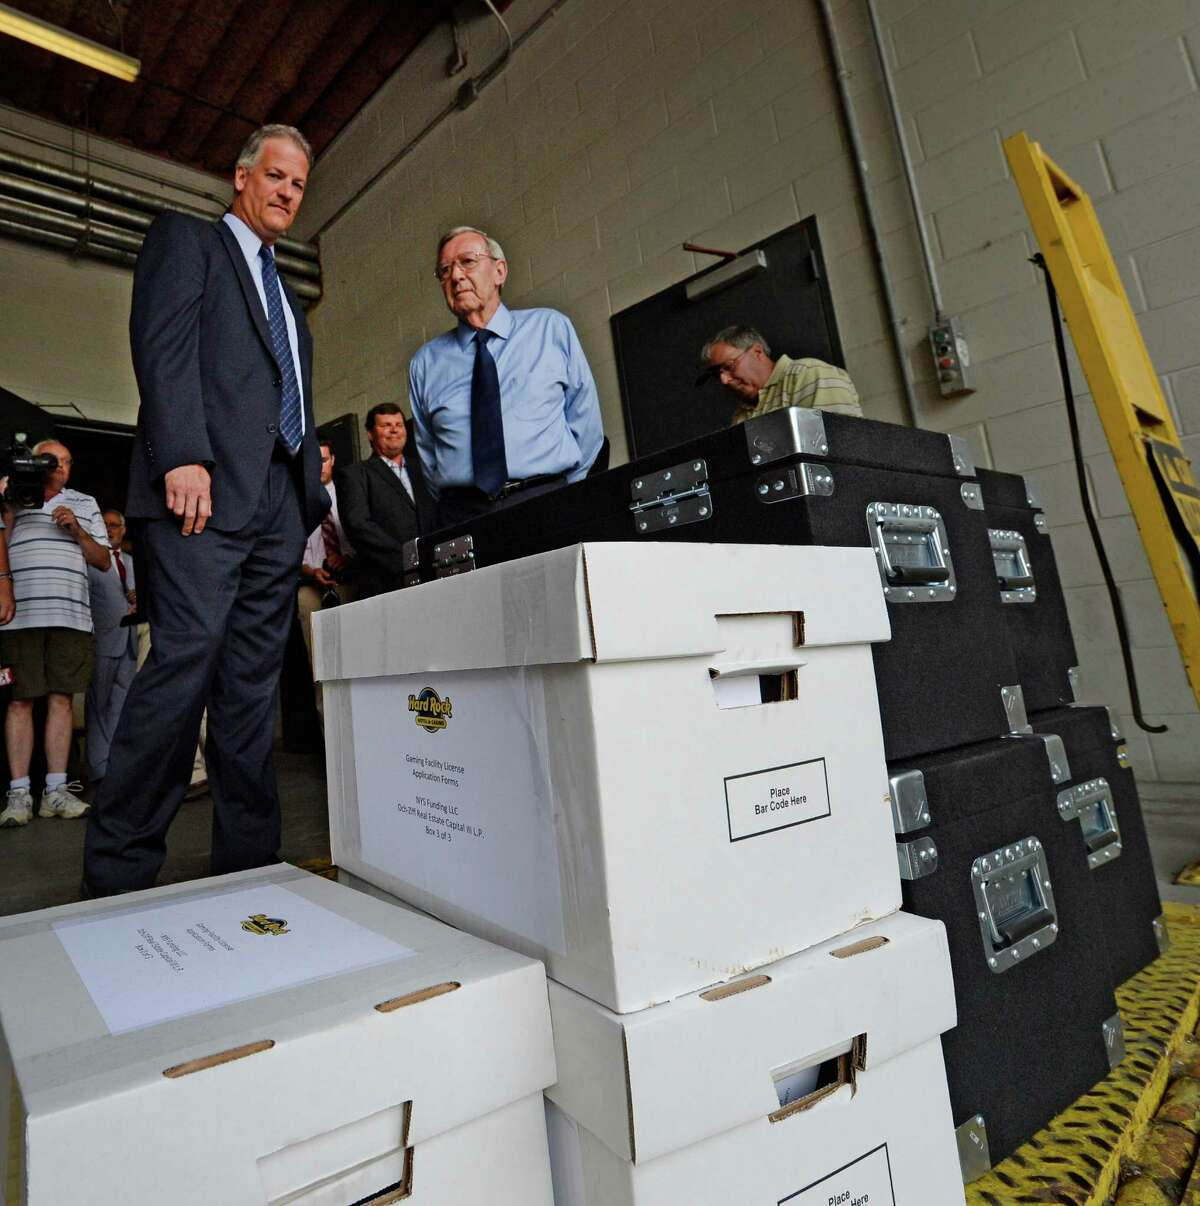 Capital OTB's John Signor, left and Rensselaer Mayor Dan Dwyer, right watch as the Rensselaer casino bid documents are delivered at the New York State Gaming building Monday morning June 30, 2014 in Schenectady, N.Y. (Skip Dickstein / Times Union archive)